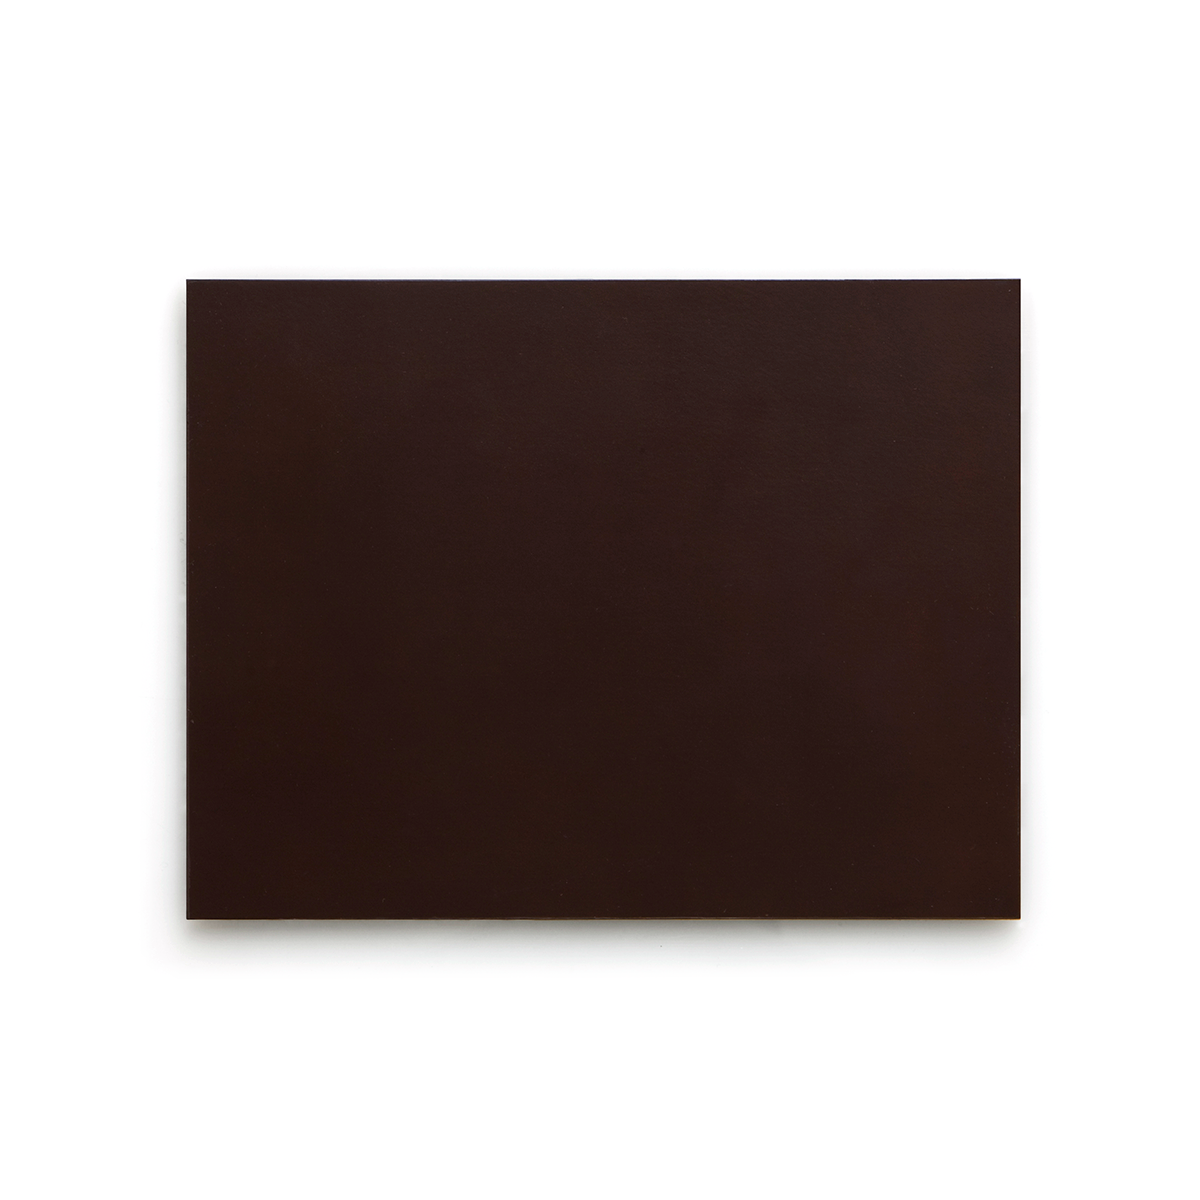 100% Leather Mouse Tablet Pad Desk Series 雅緻系列 書房文具 滑鼠墊 / 平板墊